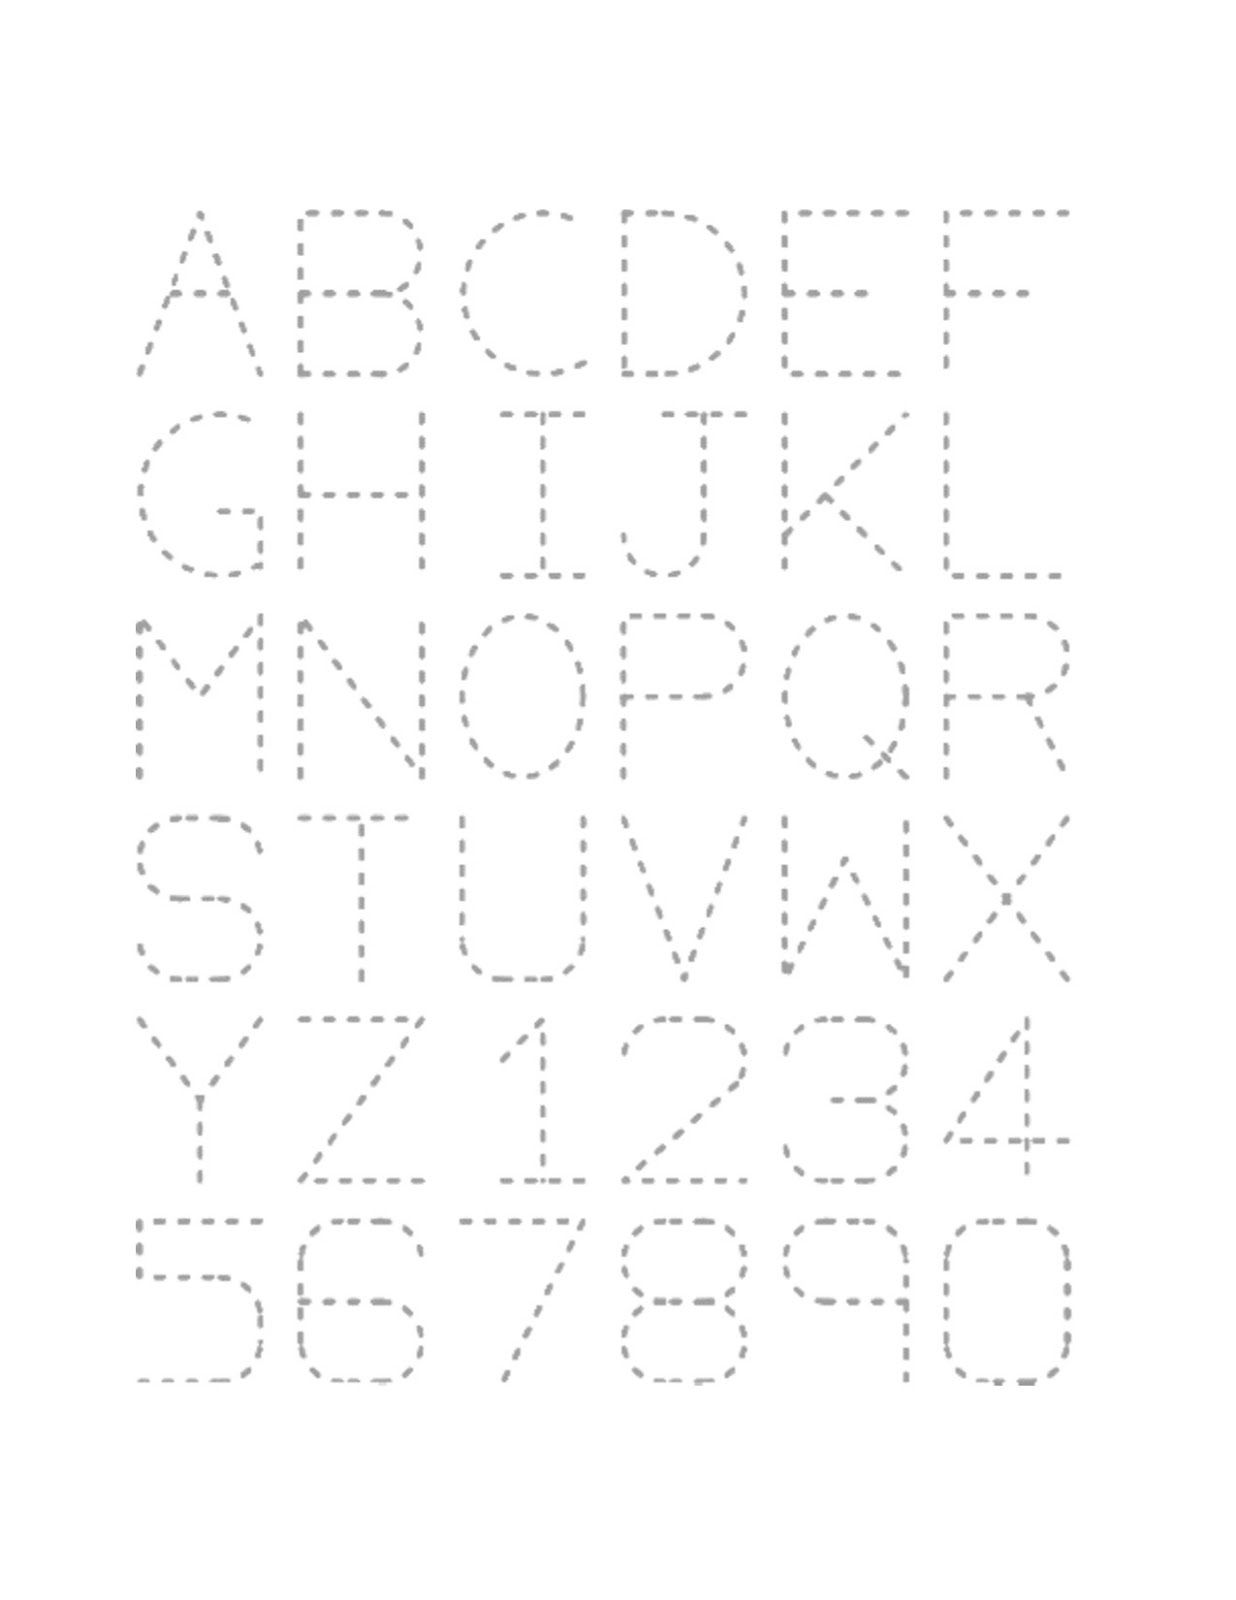 Free Traceable Alphabet Worksheets For Tidy Handwriting